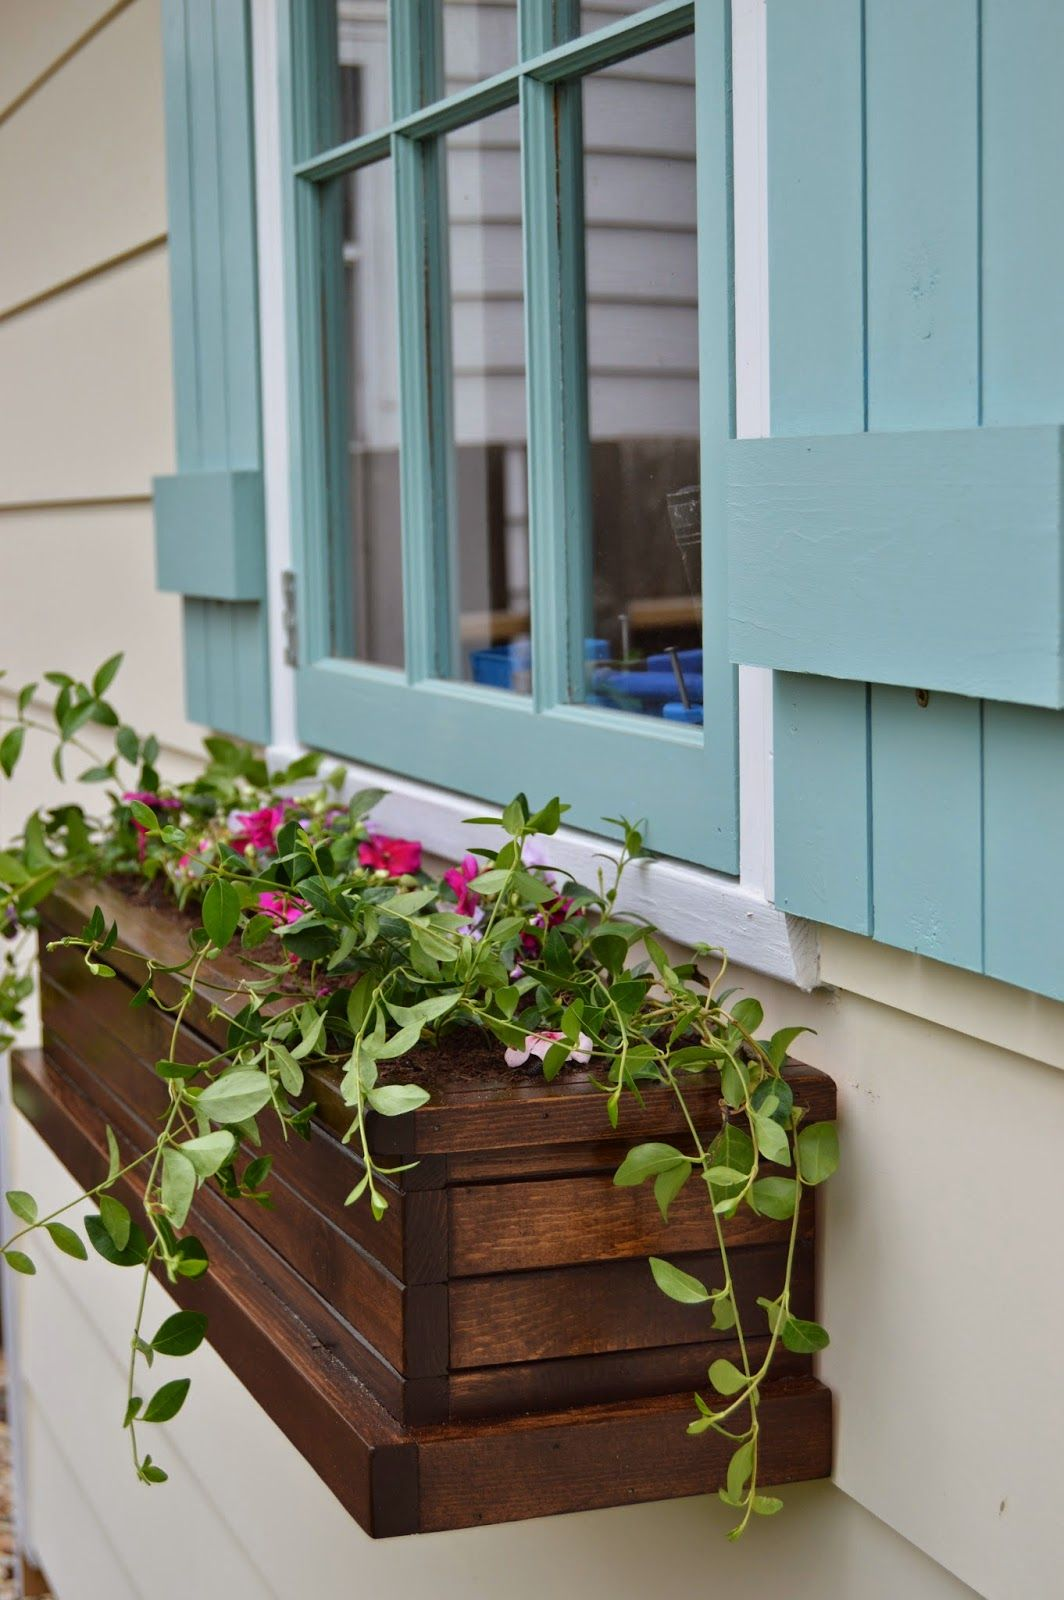 How To Build A Planter Box Kruse S Workshop Diy Window Box